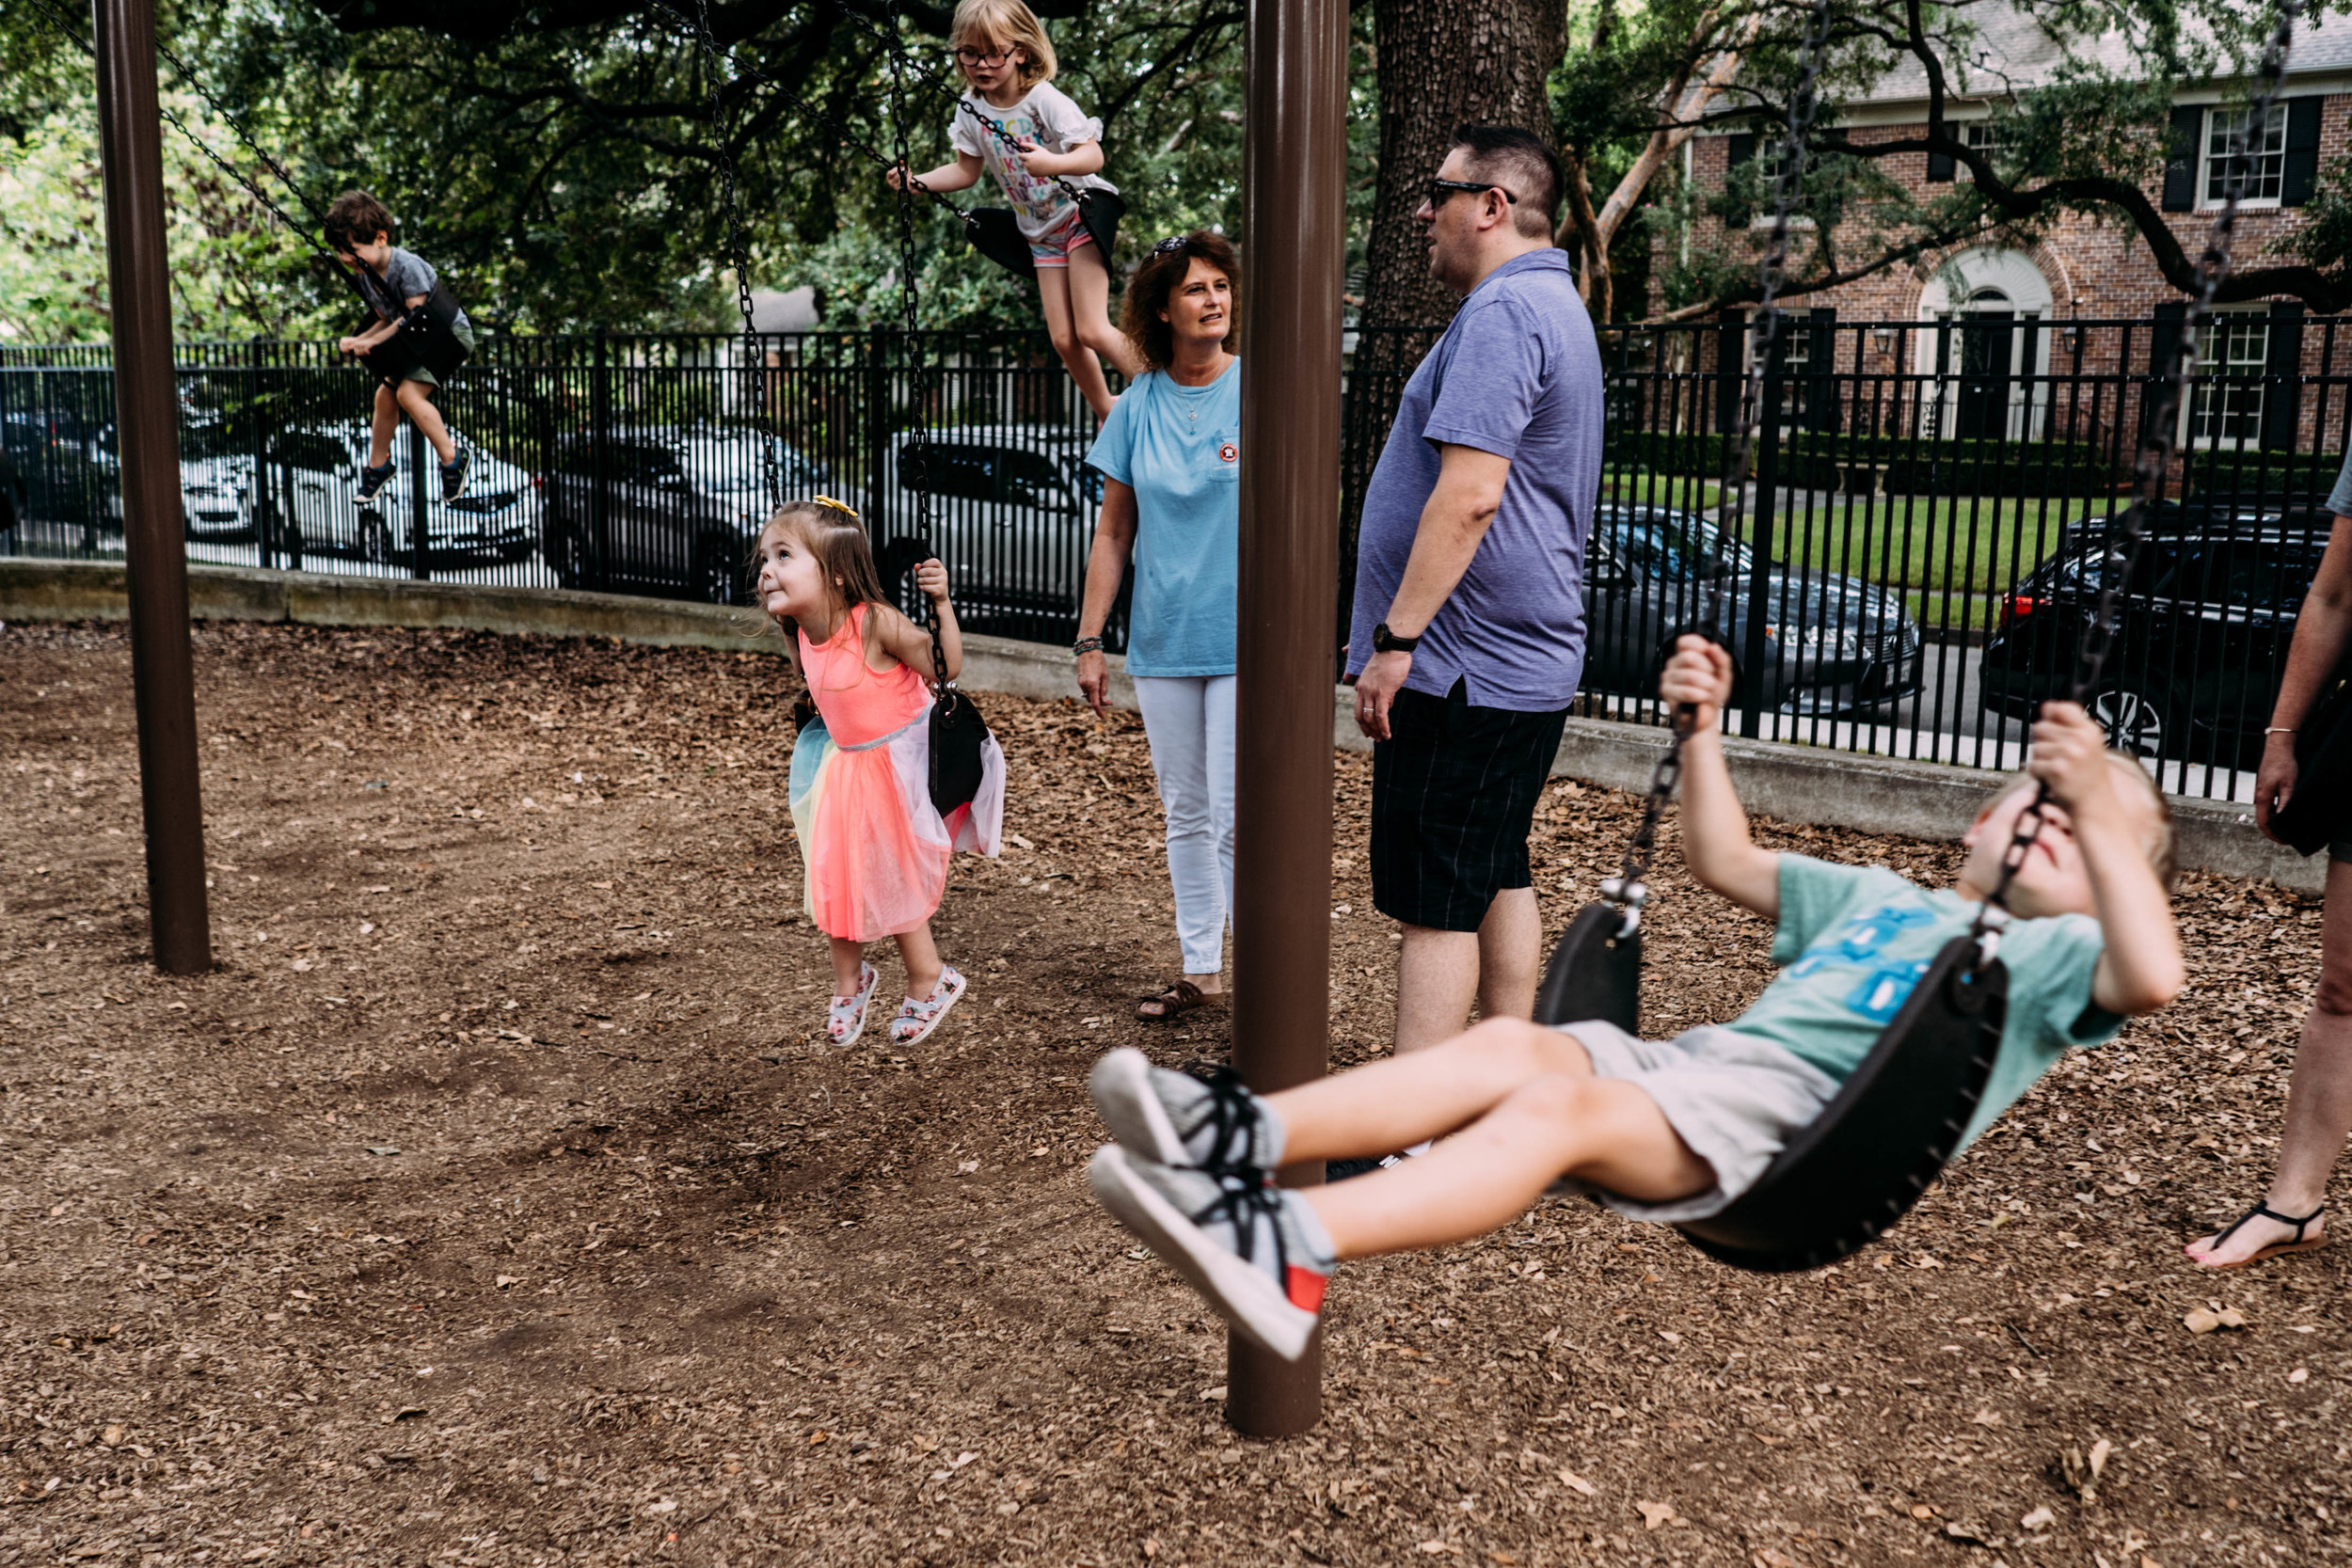 birthday party at the park-10.jpg